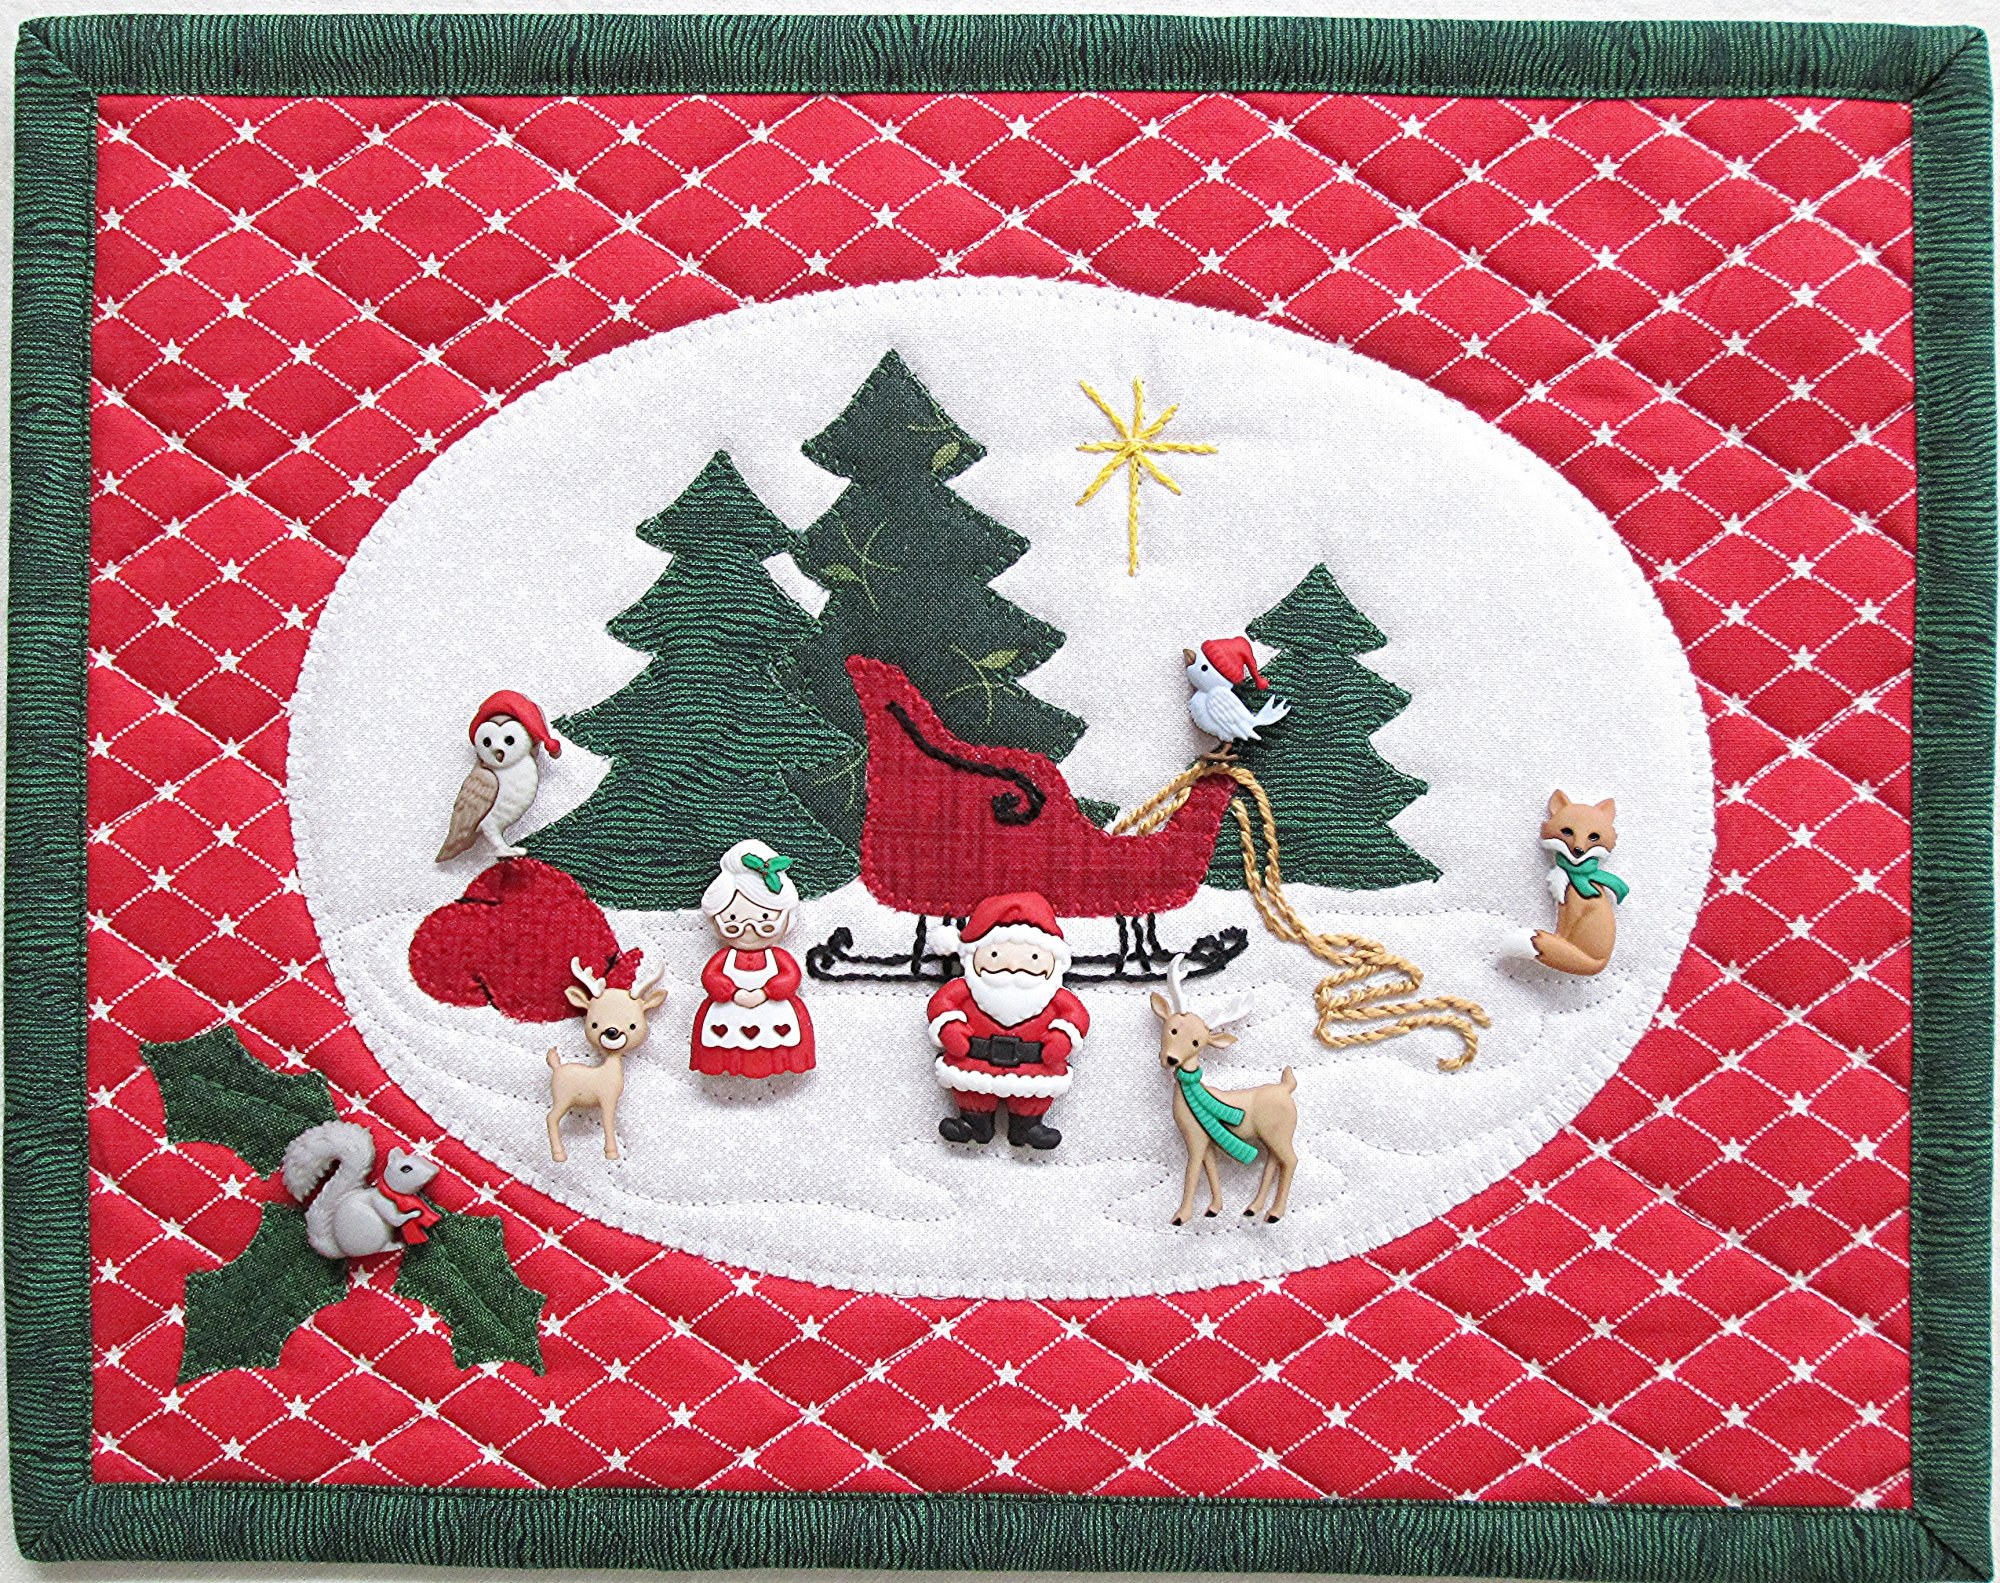 Christmas In the Woods Wall Hanging Kit 11 1/2 x 9